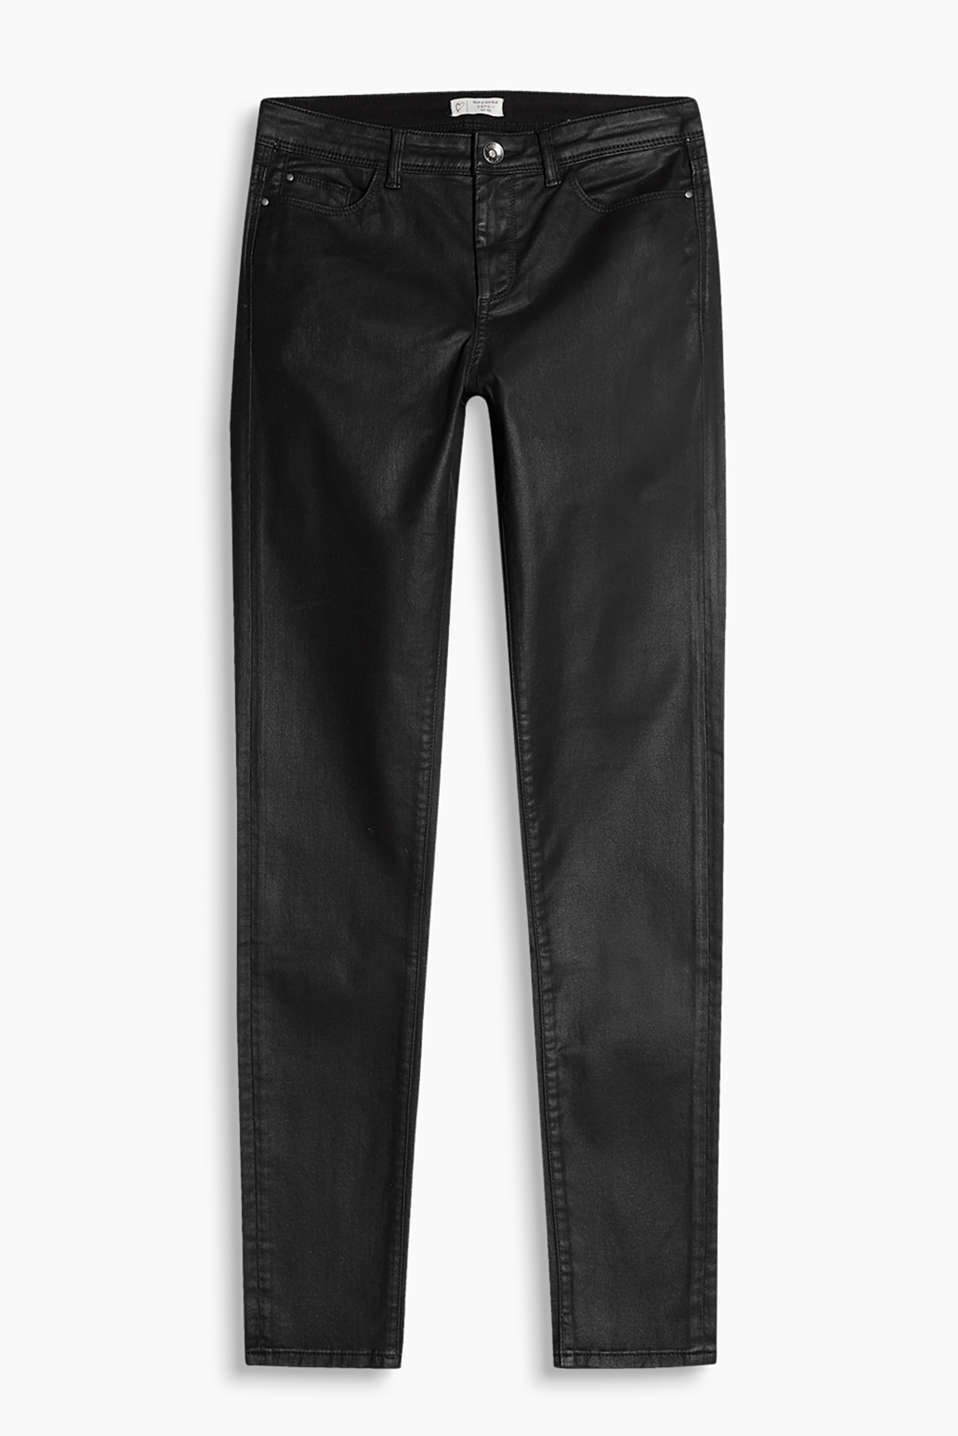 Shine on! Coated five-pocket trousers in cotton with added stretch for comfort